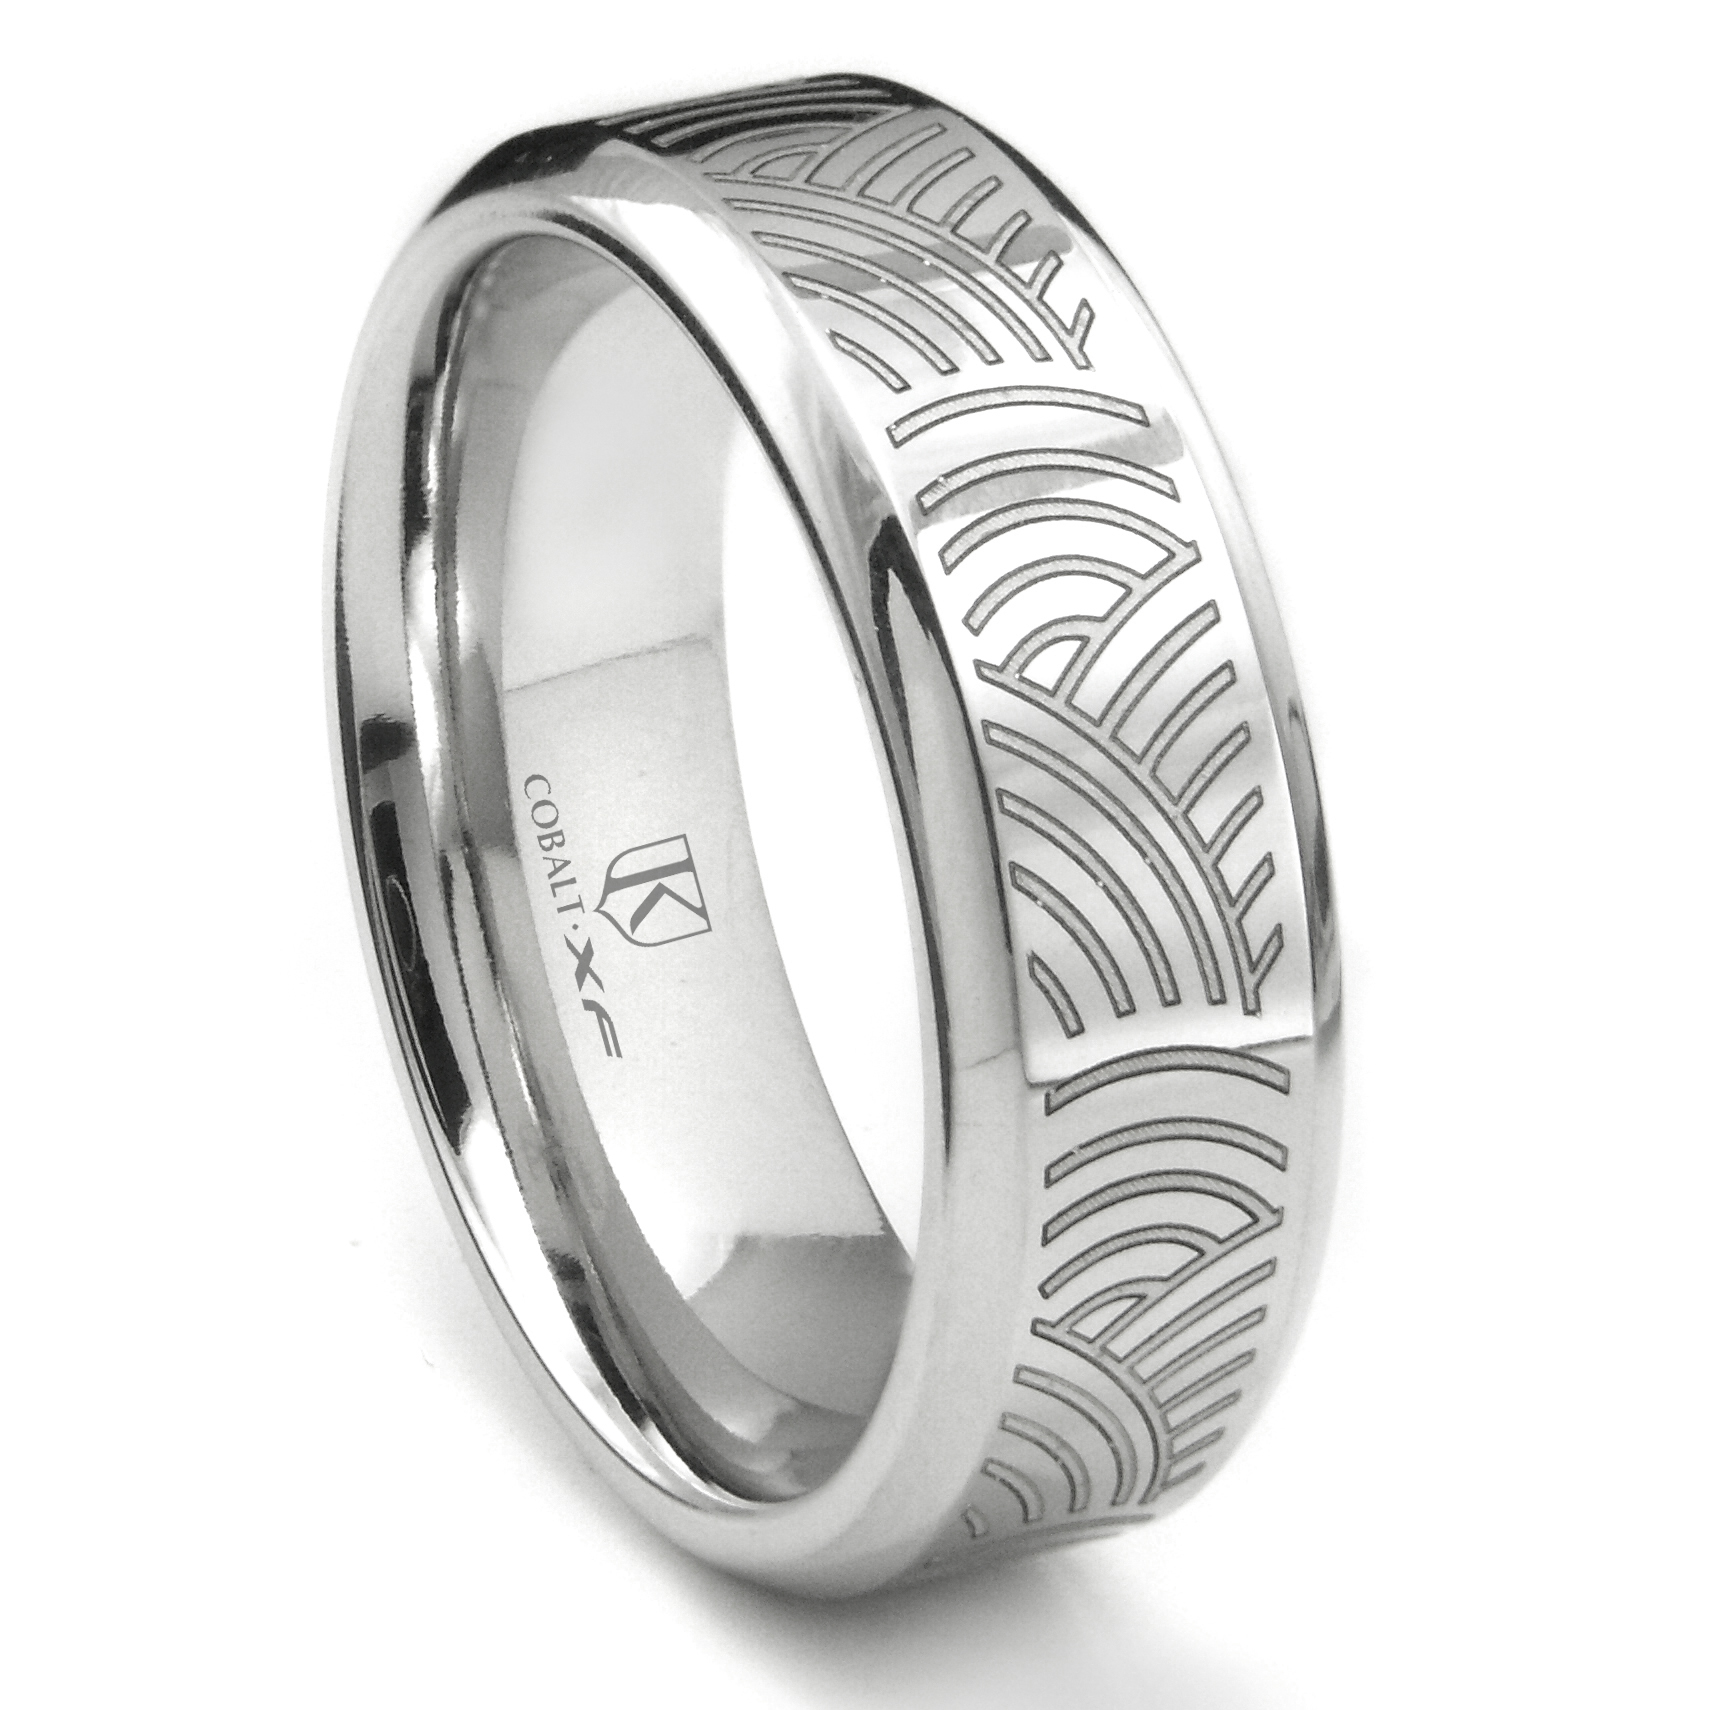 engraved engraving bands wedding band rings